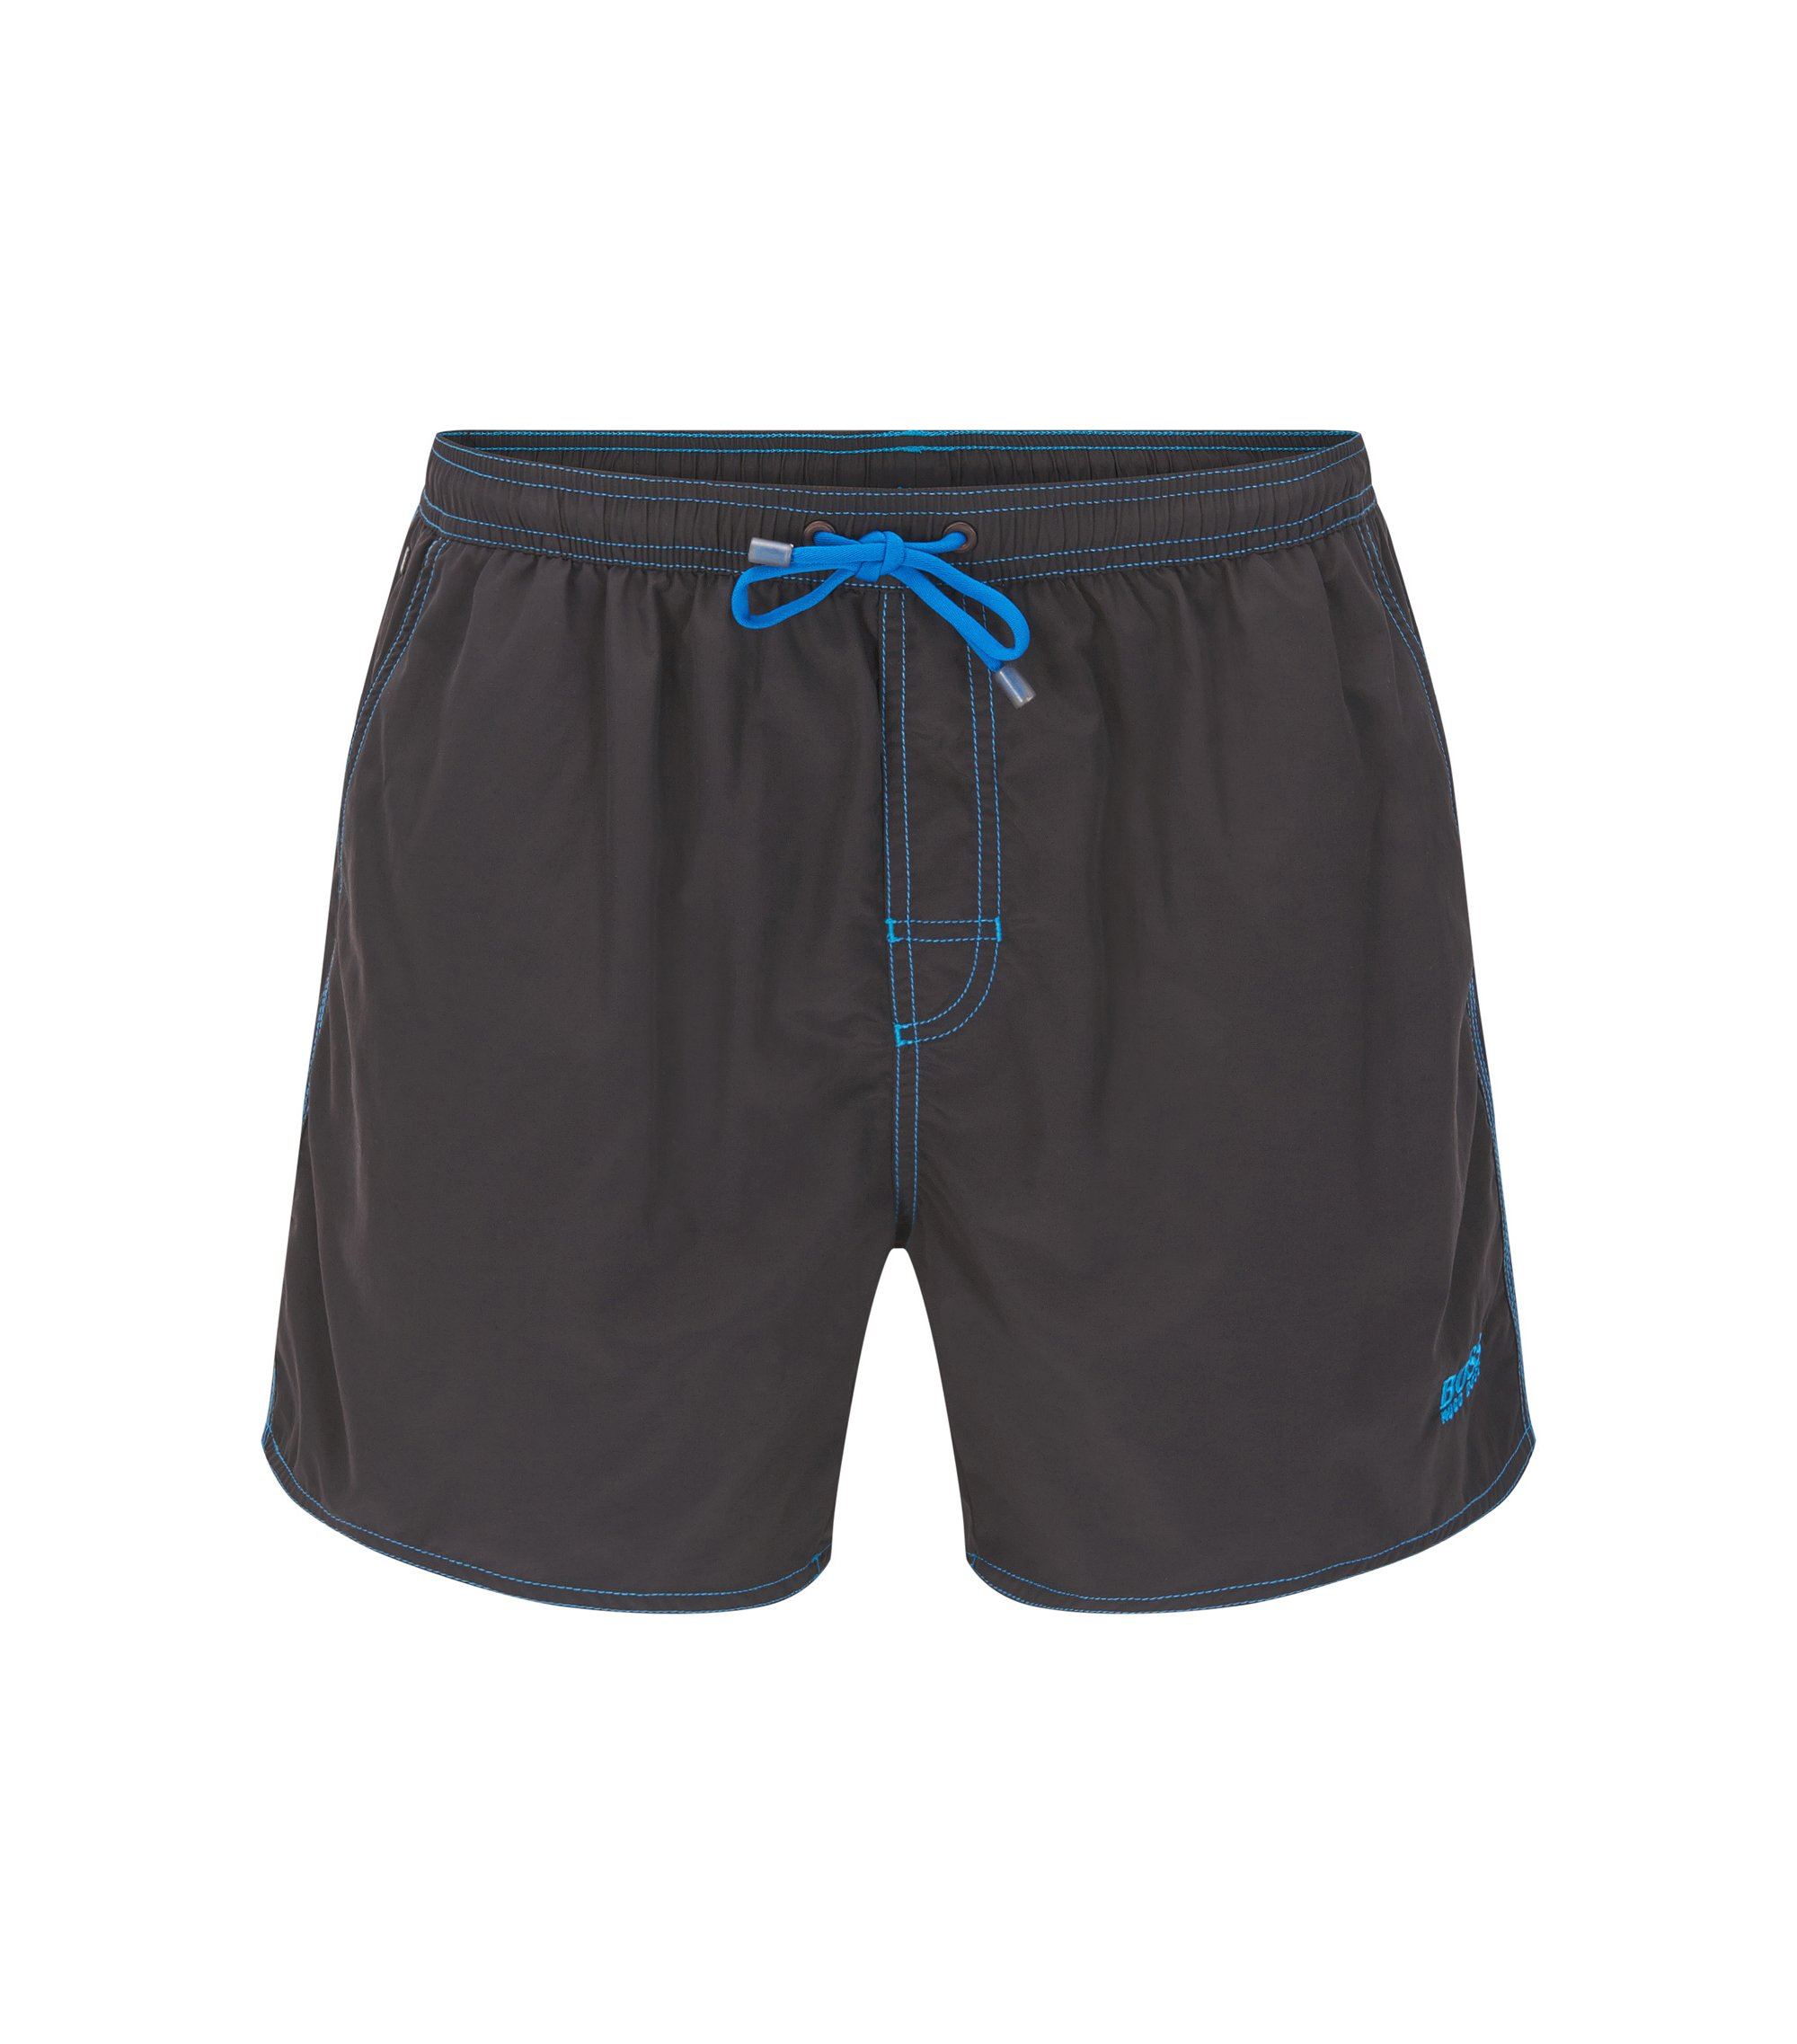 Quick Dry Swim Trunk | Lobster, Charcoal